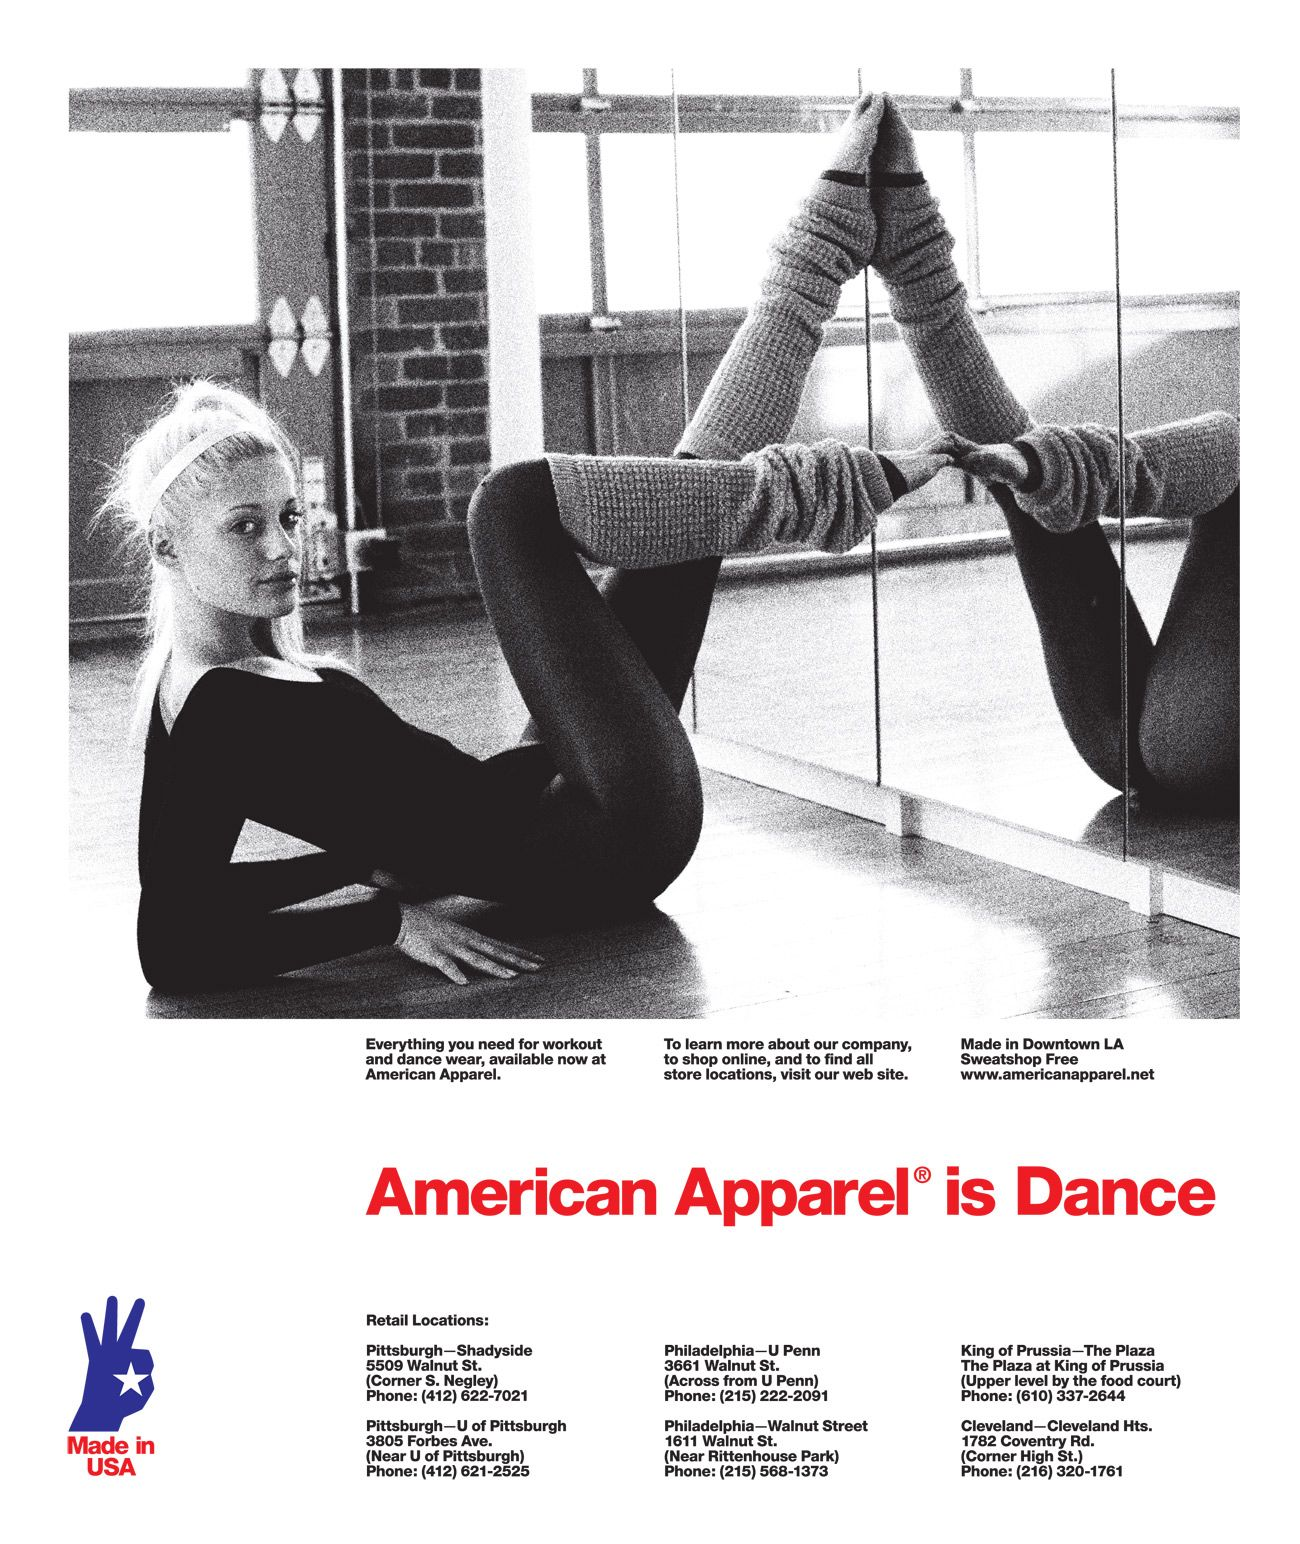 Apparel Dance Ballet Enface Pinterest And American